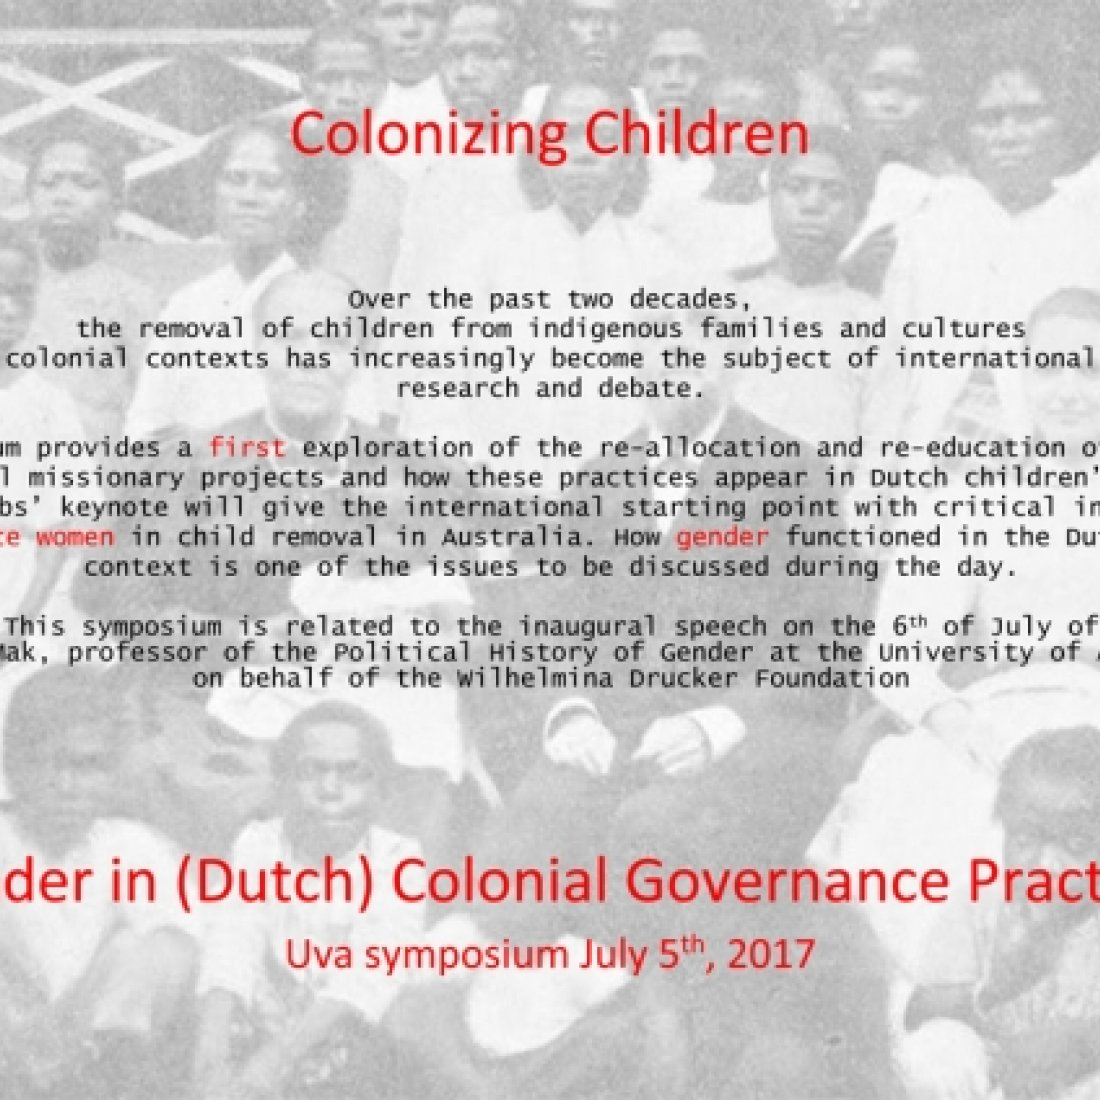 Symposium Colonizing Children 2017